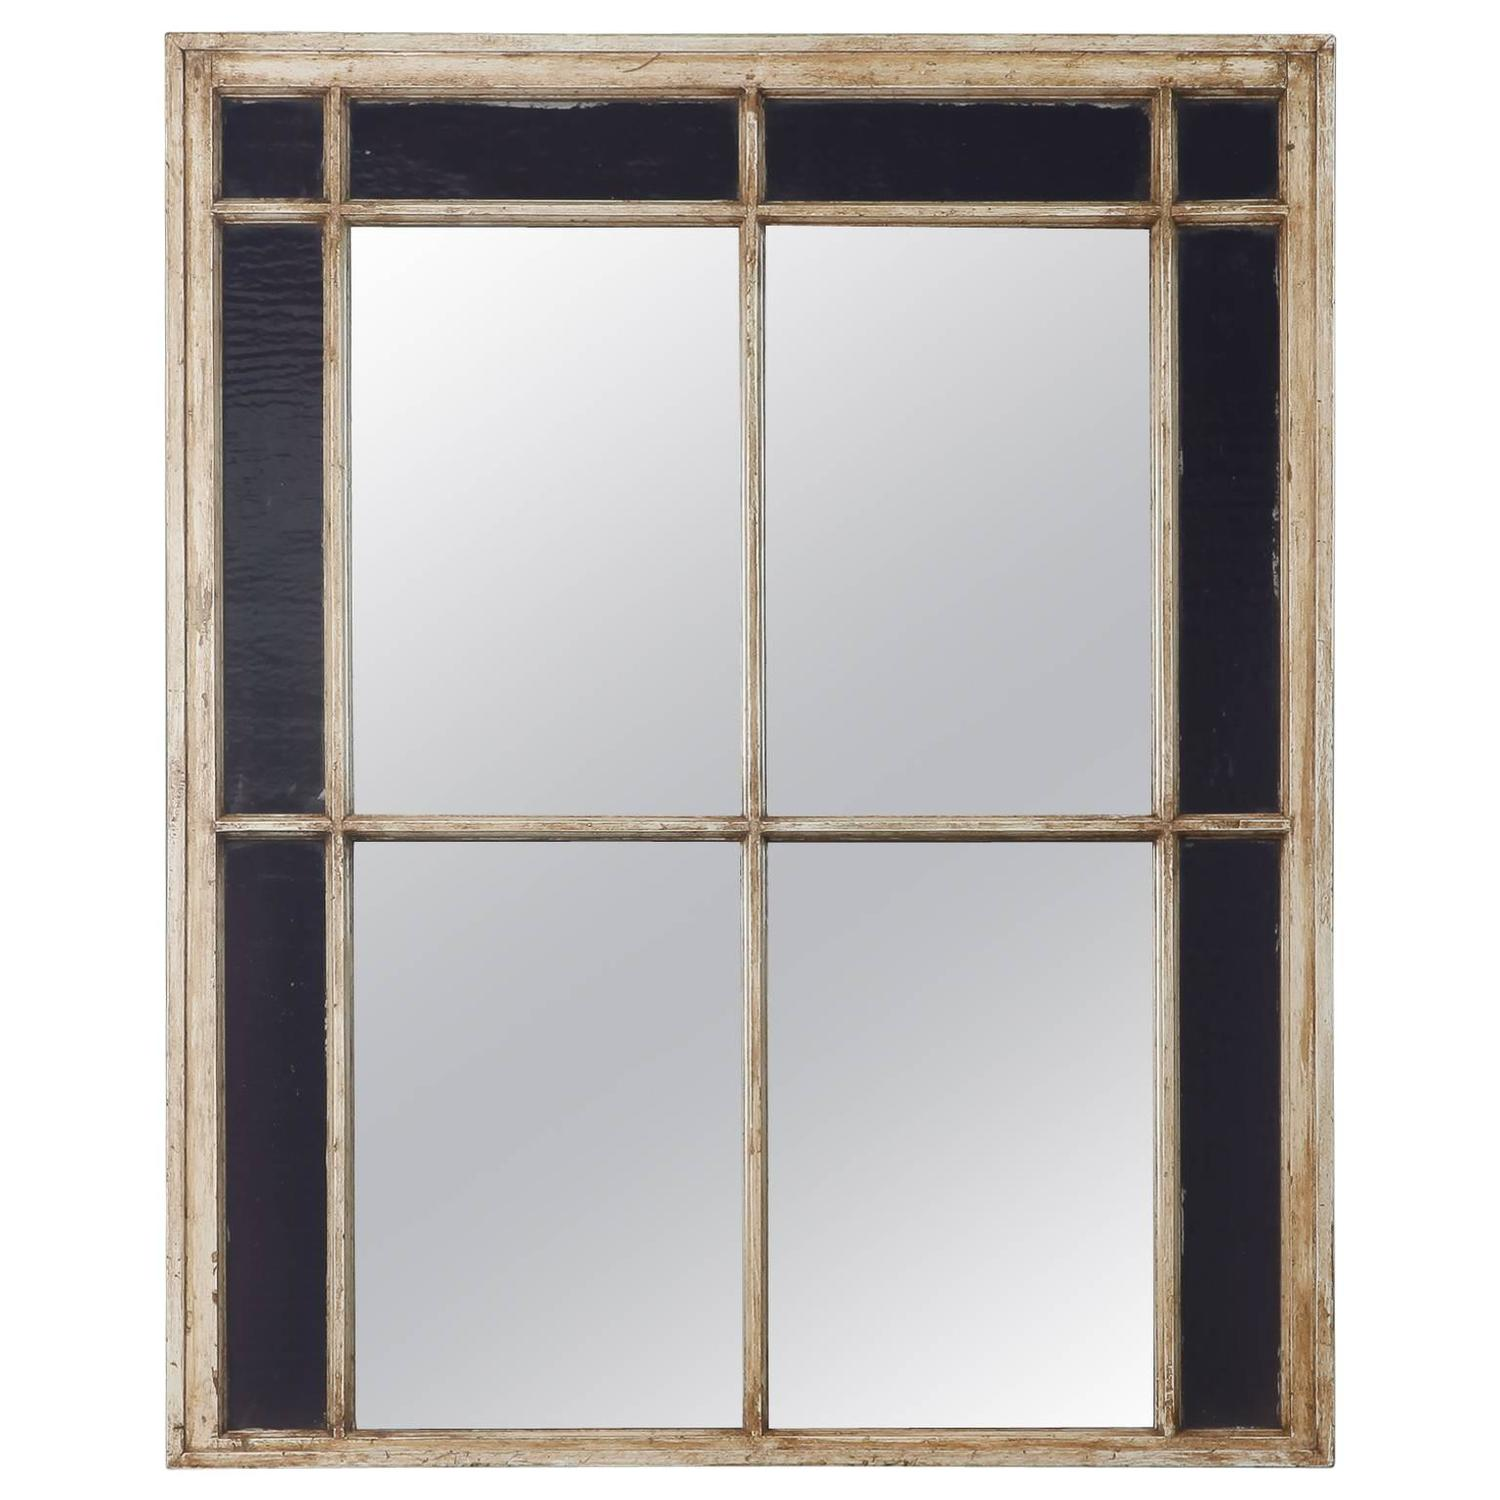 antique window frame mirror with original amethyst stained glass for sale at 1stdibs - Window Frame Mirror